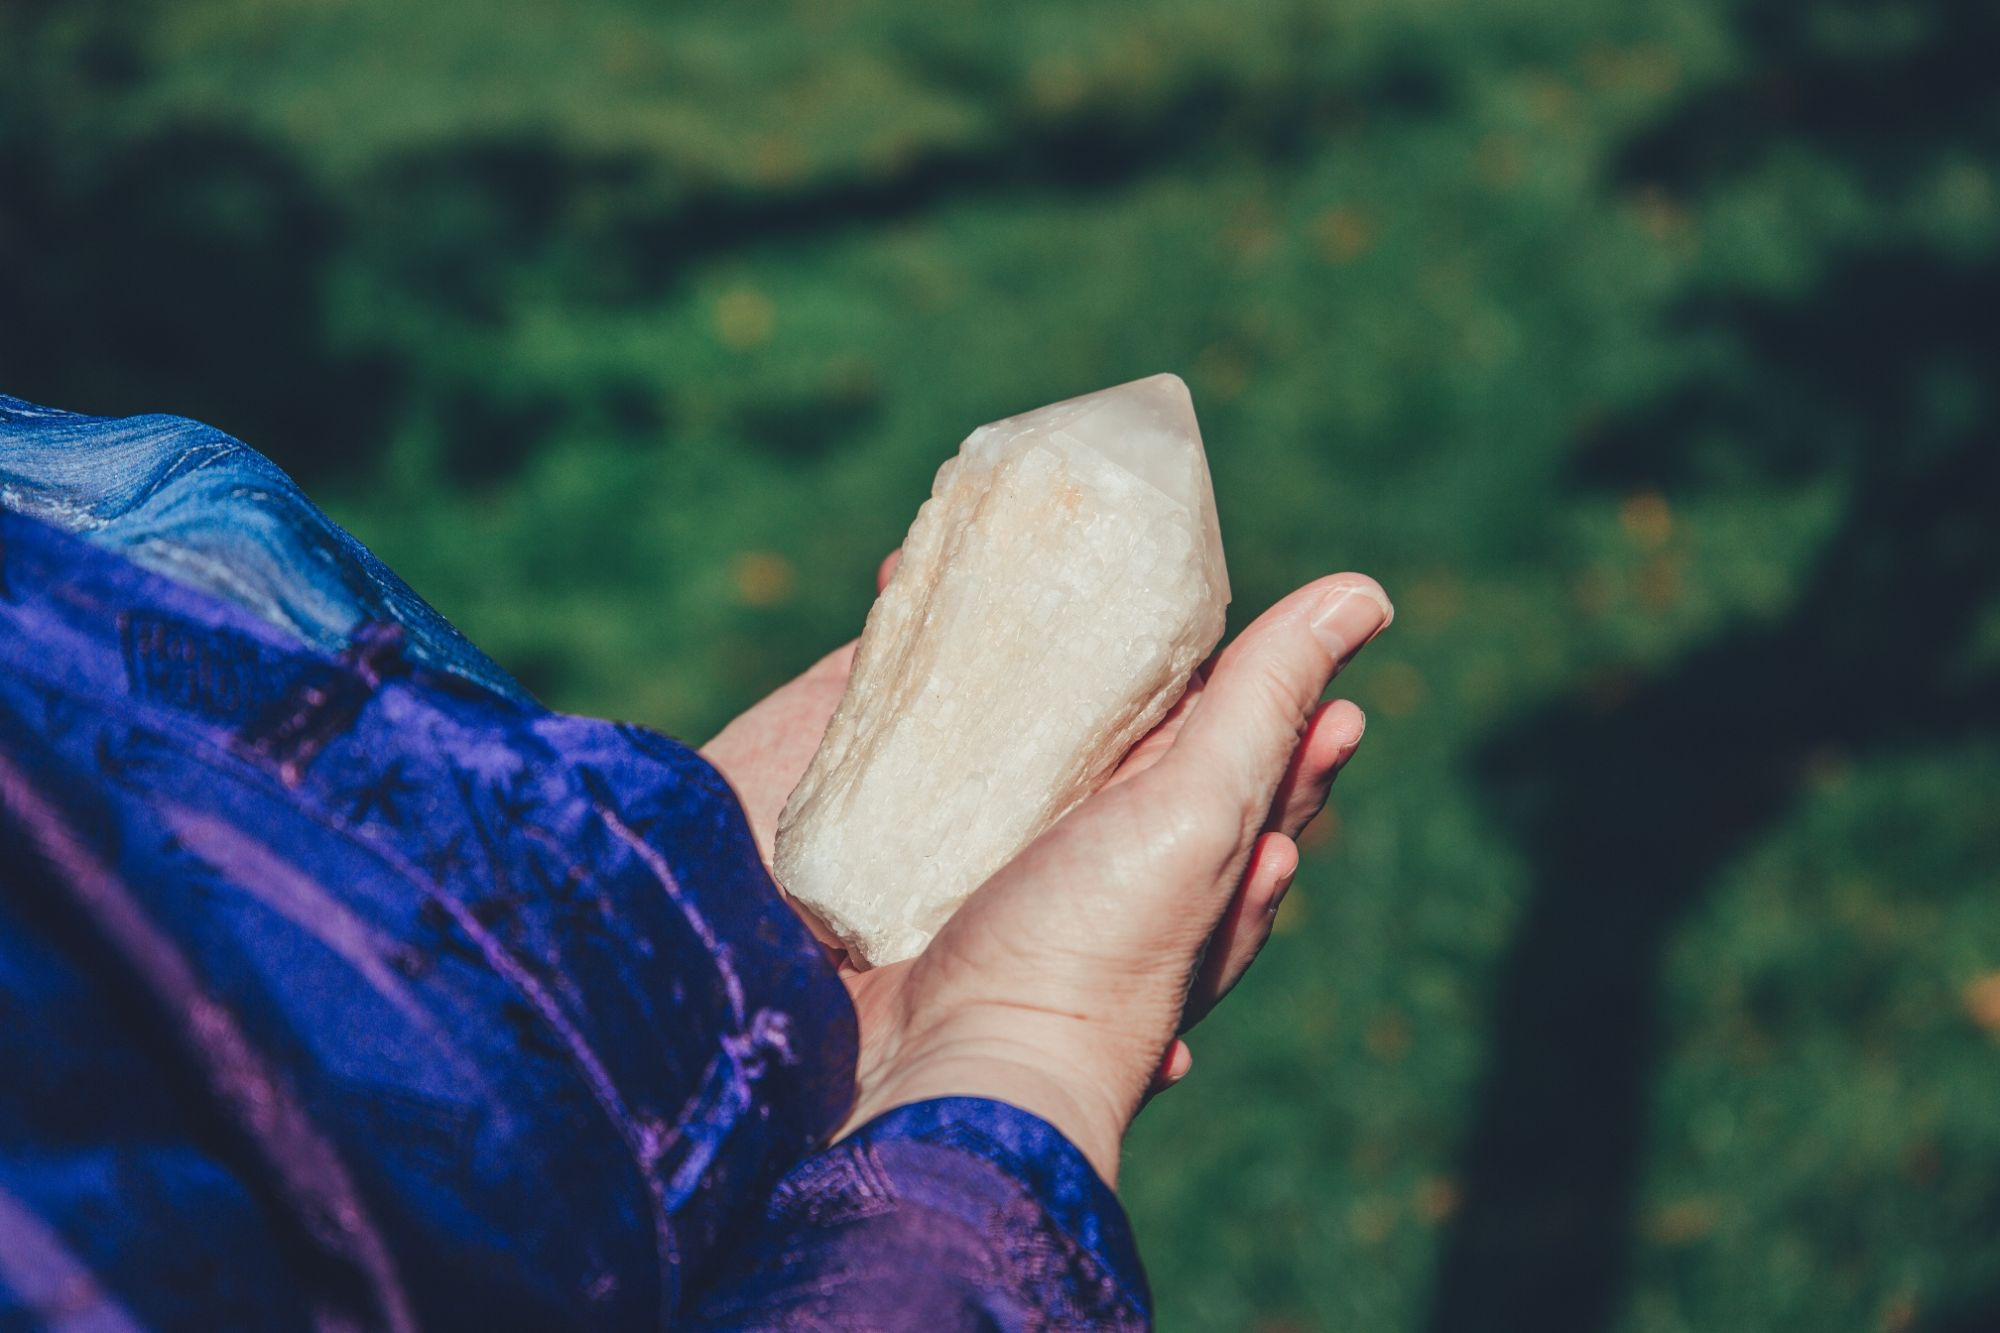 Helen's hands holding a candle quartz point